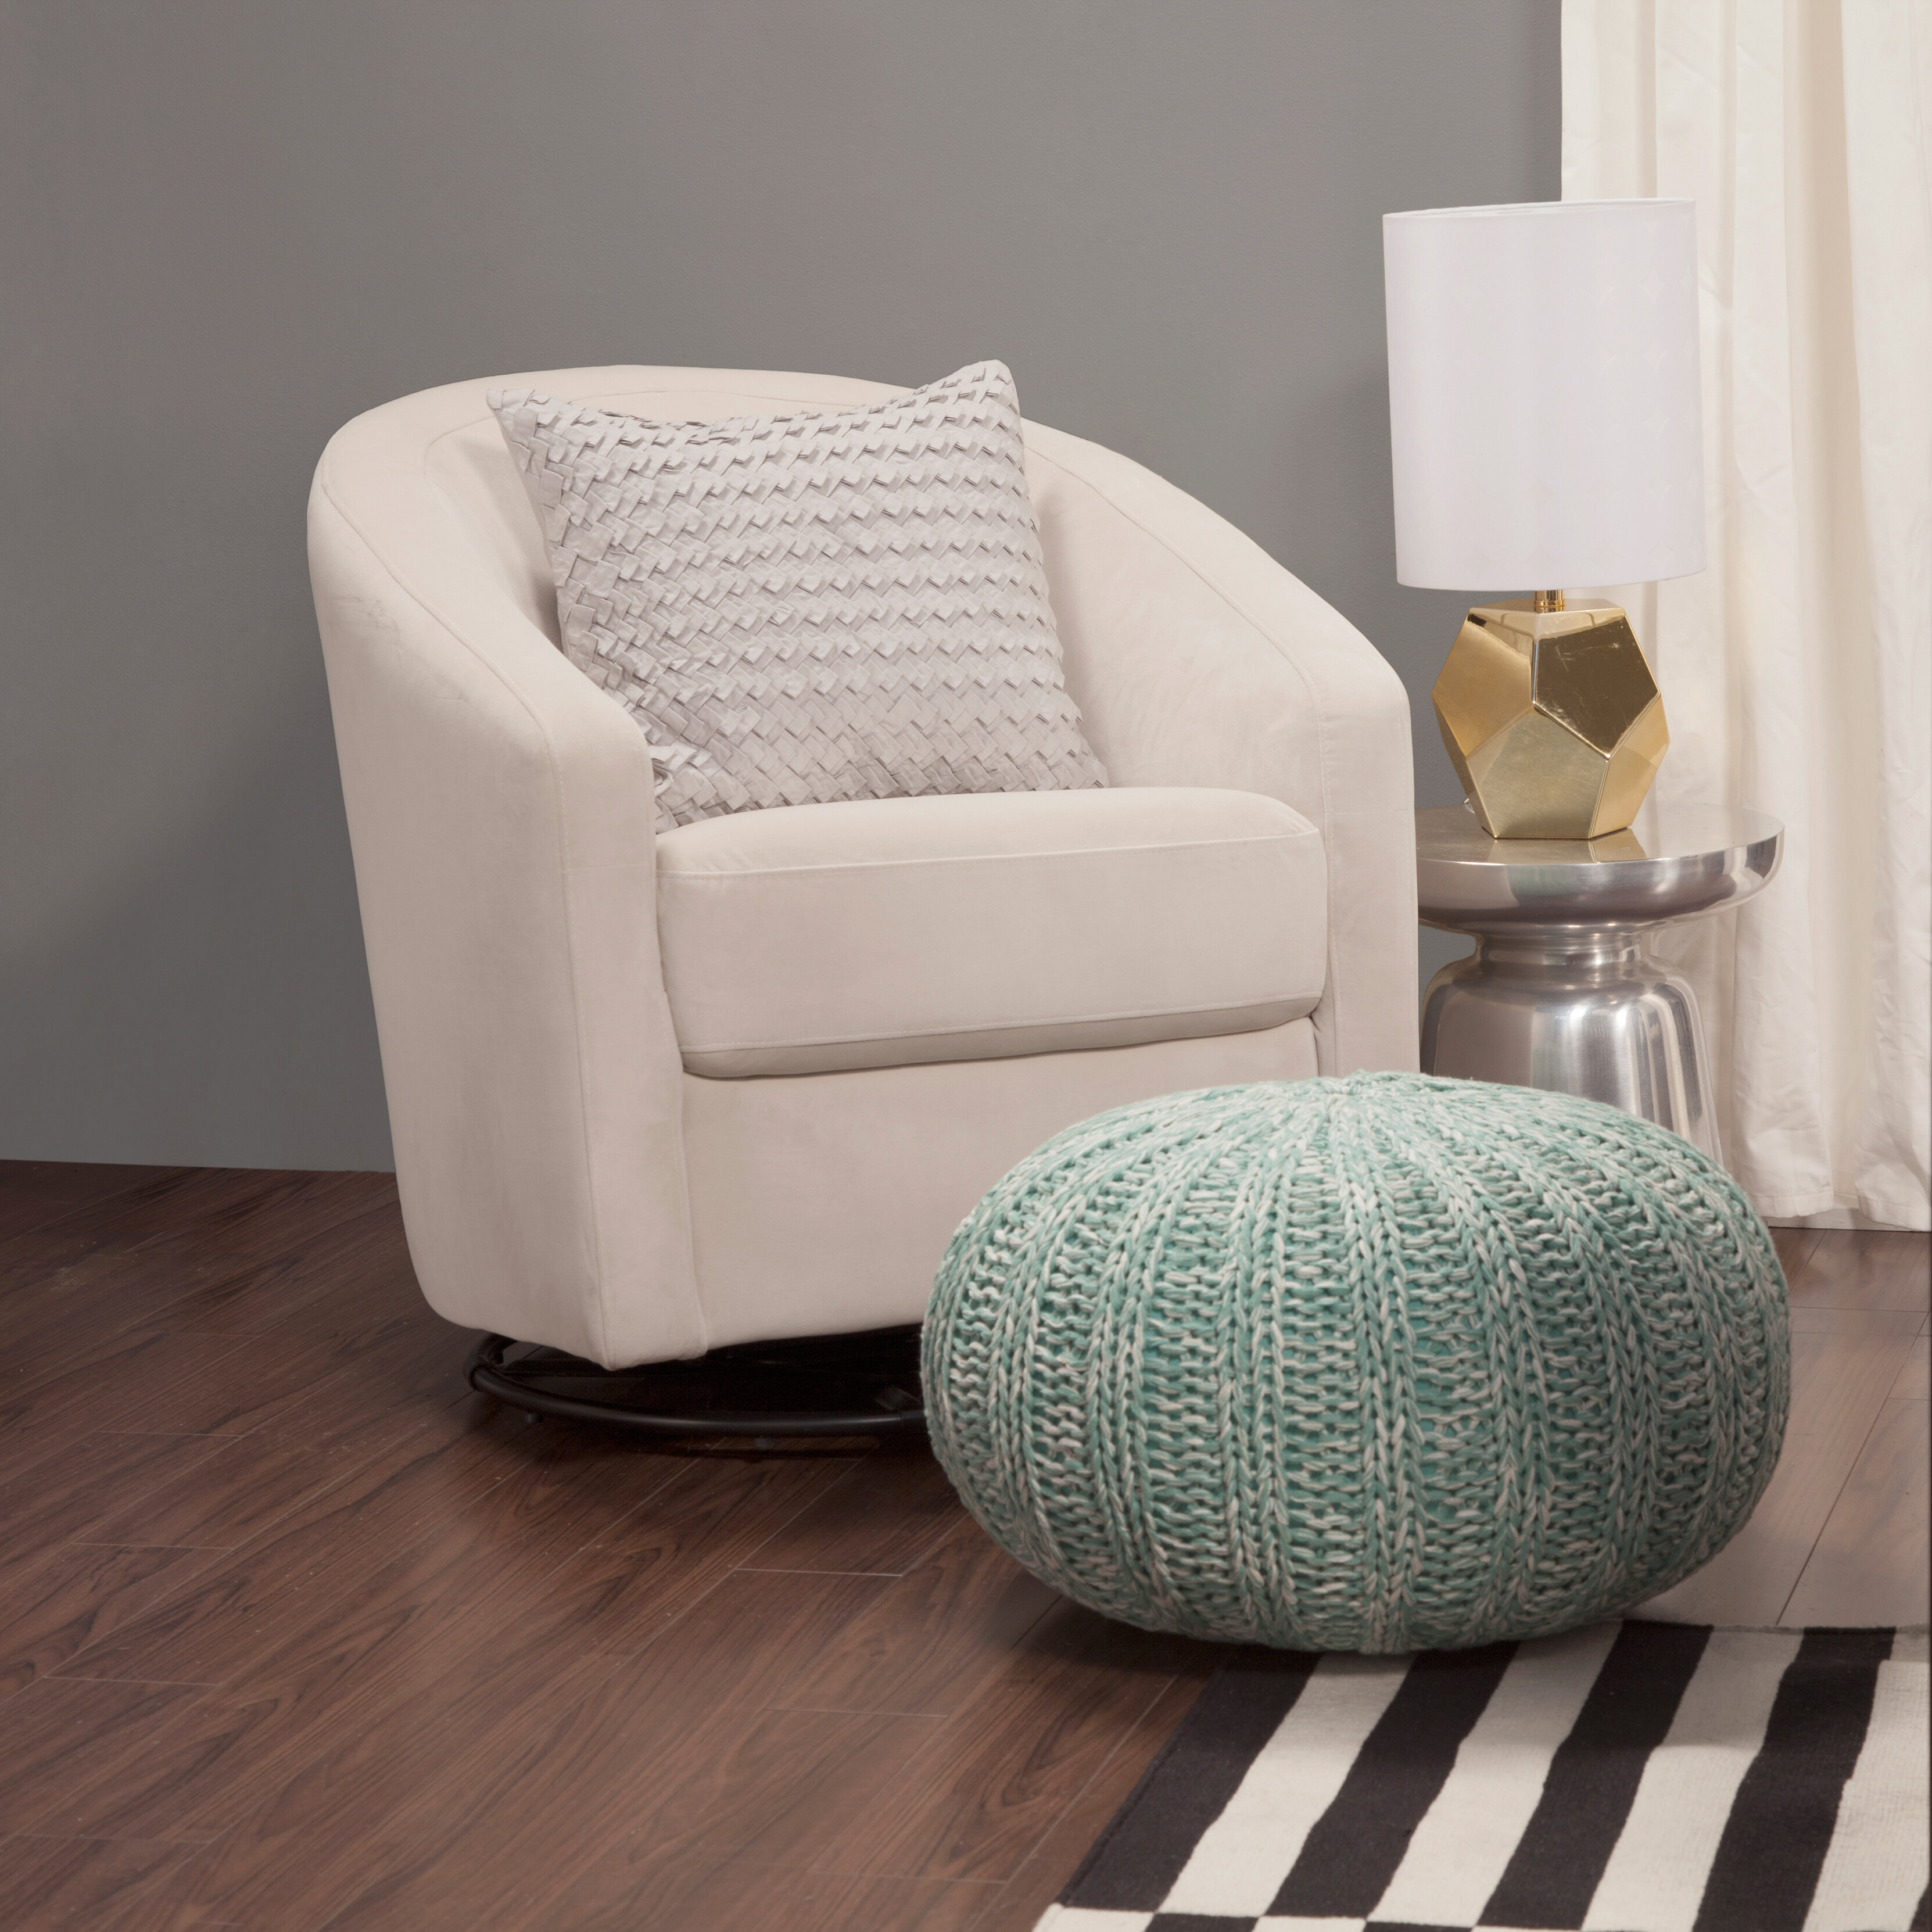 Incredible Madison Swivel Glider Reviews Allmodern Bralicious Painted Fabric Chair Ideas Braliciousco